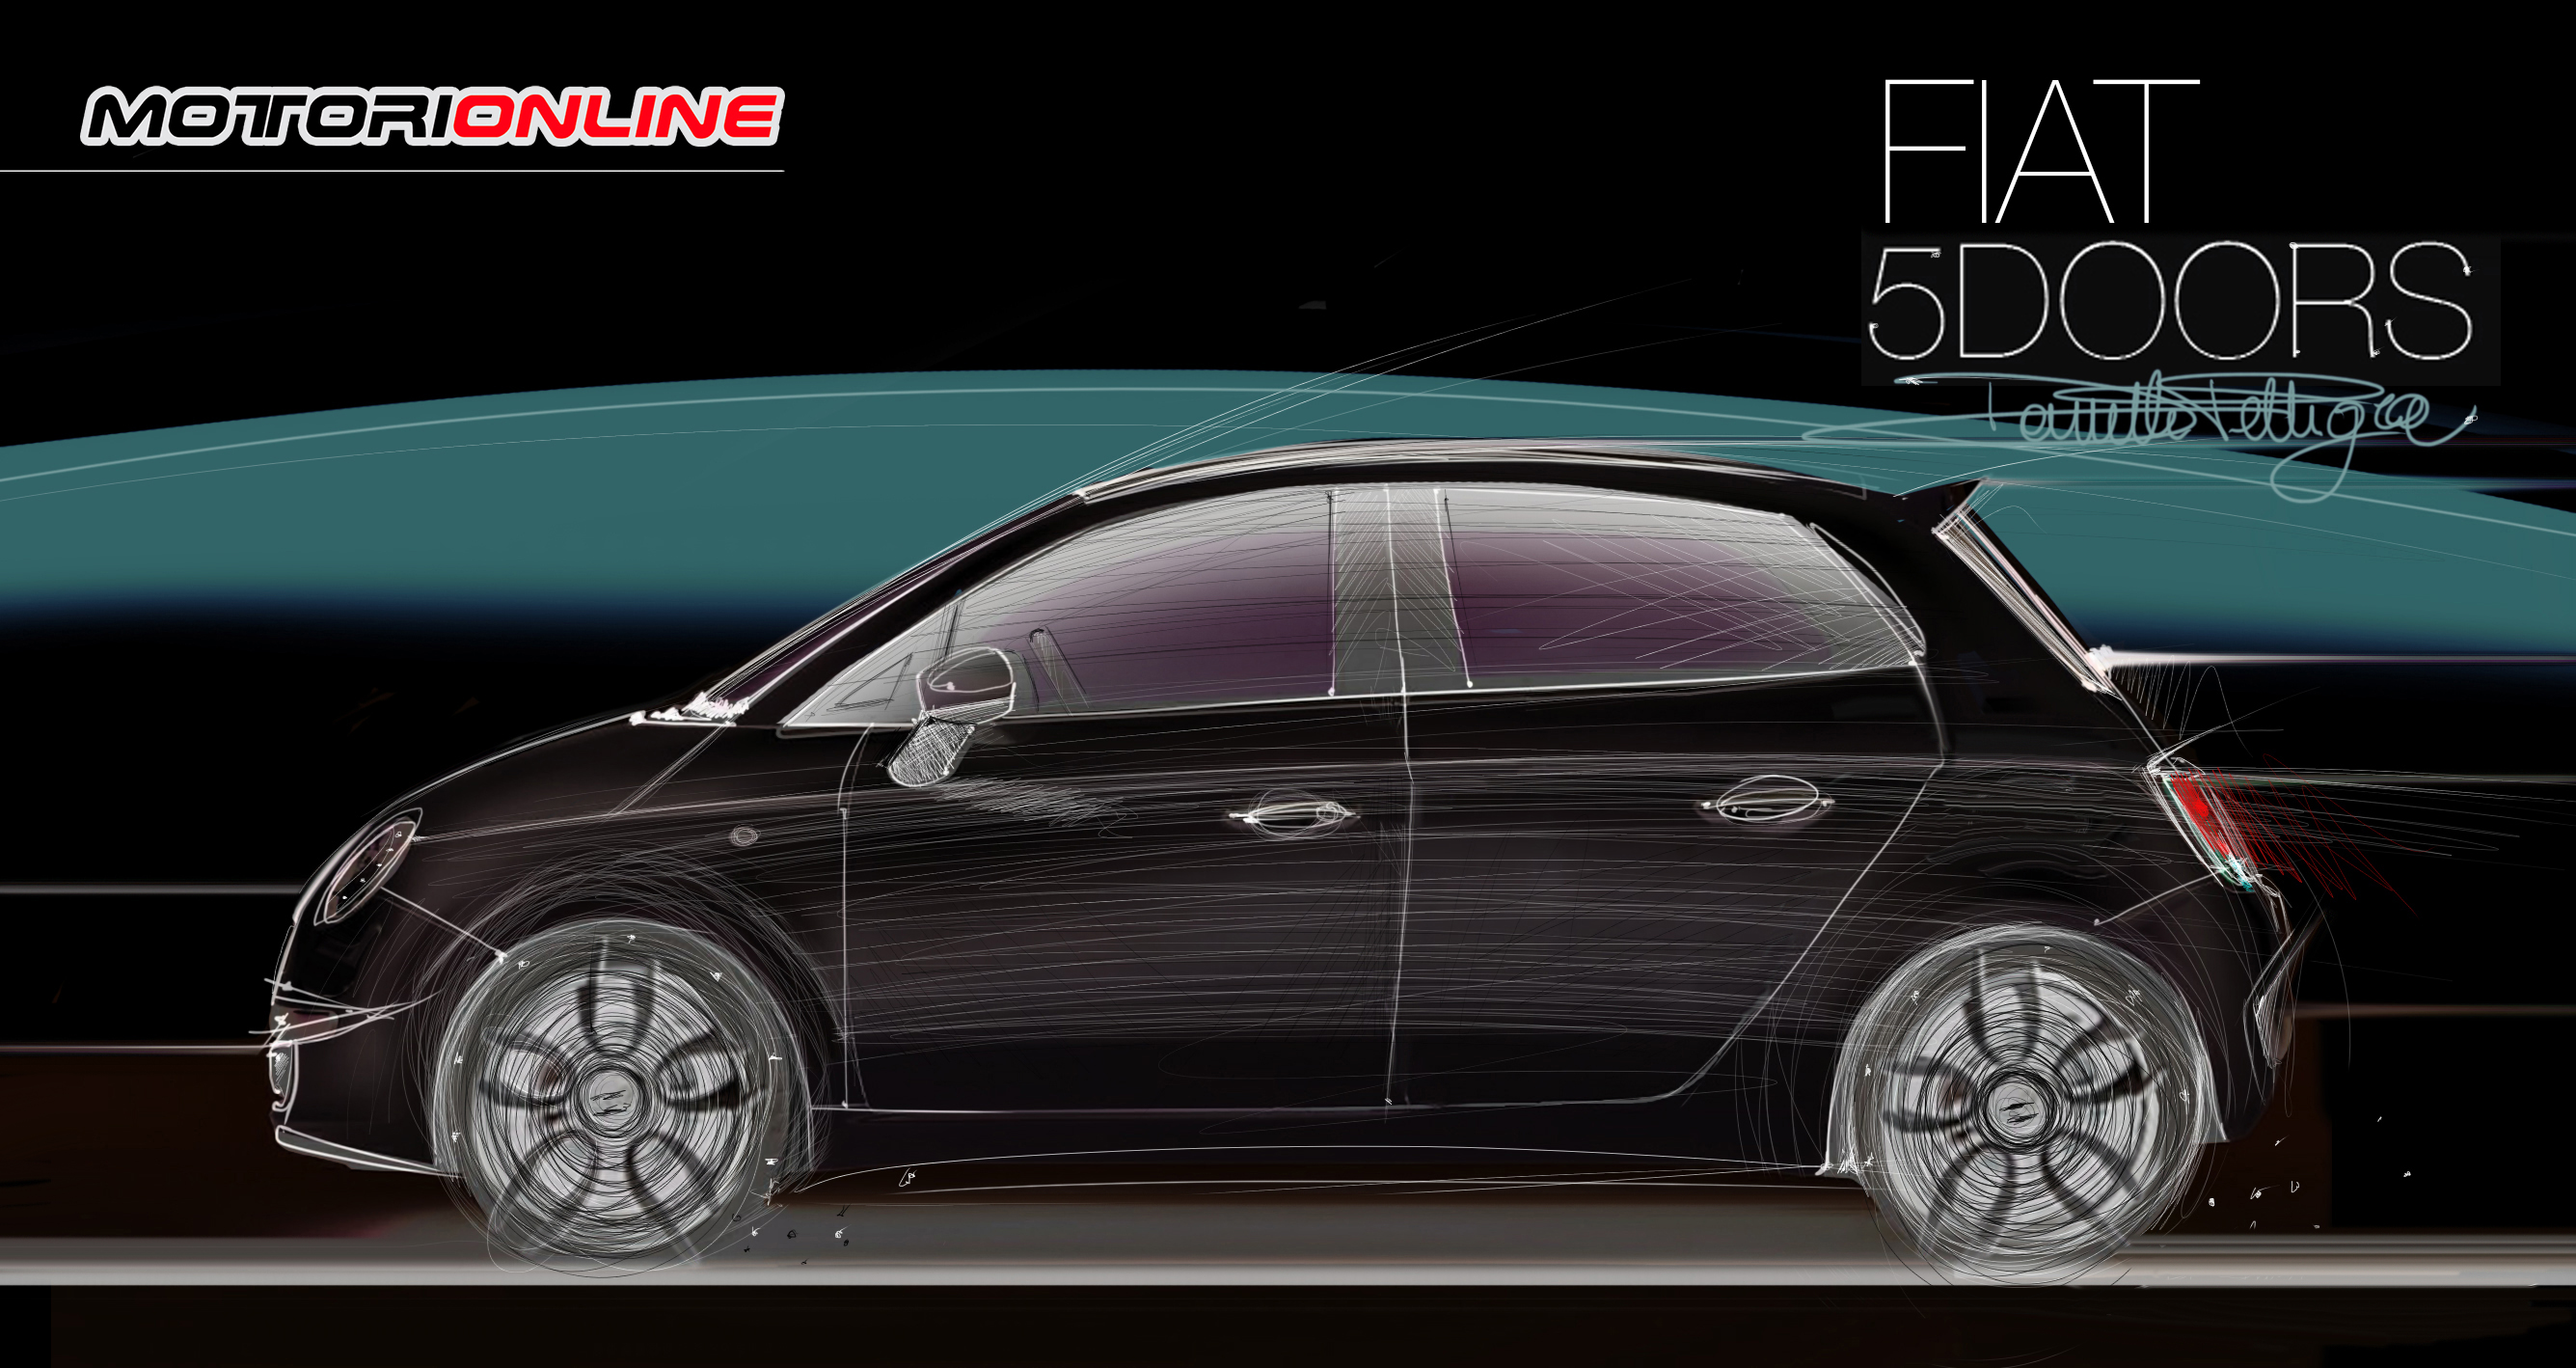 fiat 500 5 porte rendering by daniele pelligra 5 5. Black Bedroom Furniture Sets. Home Design Ideas